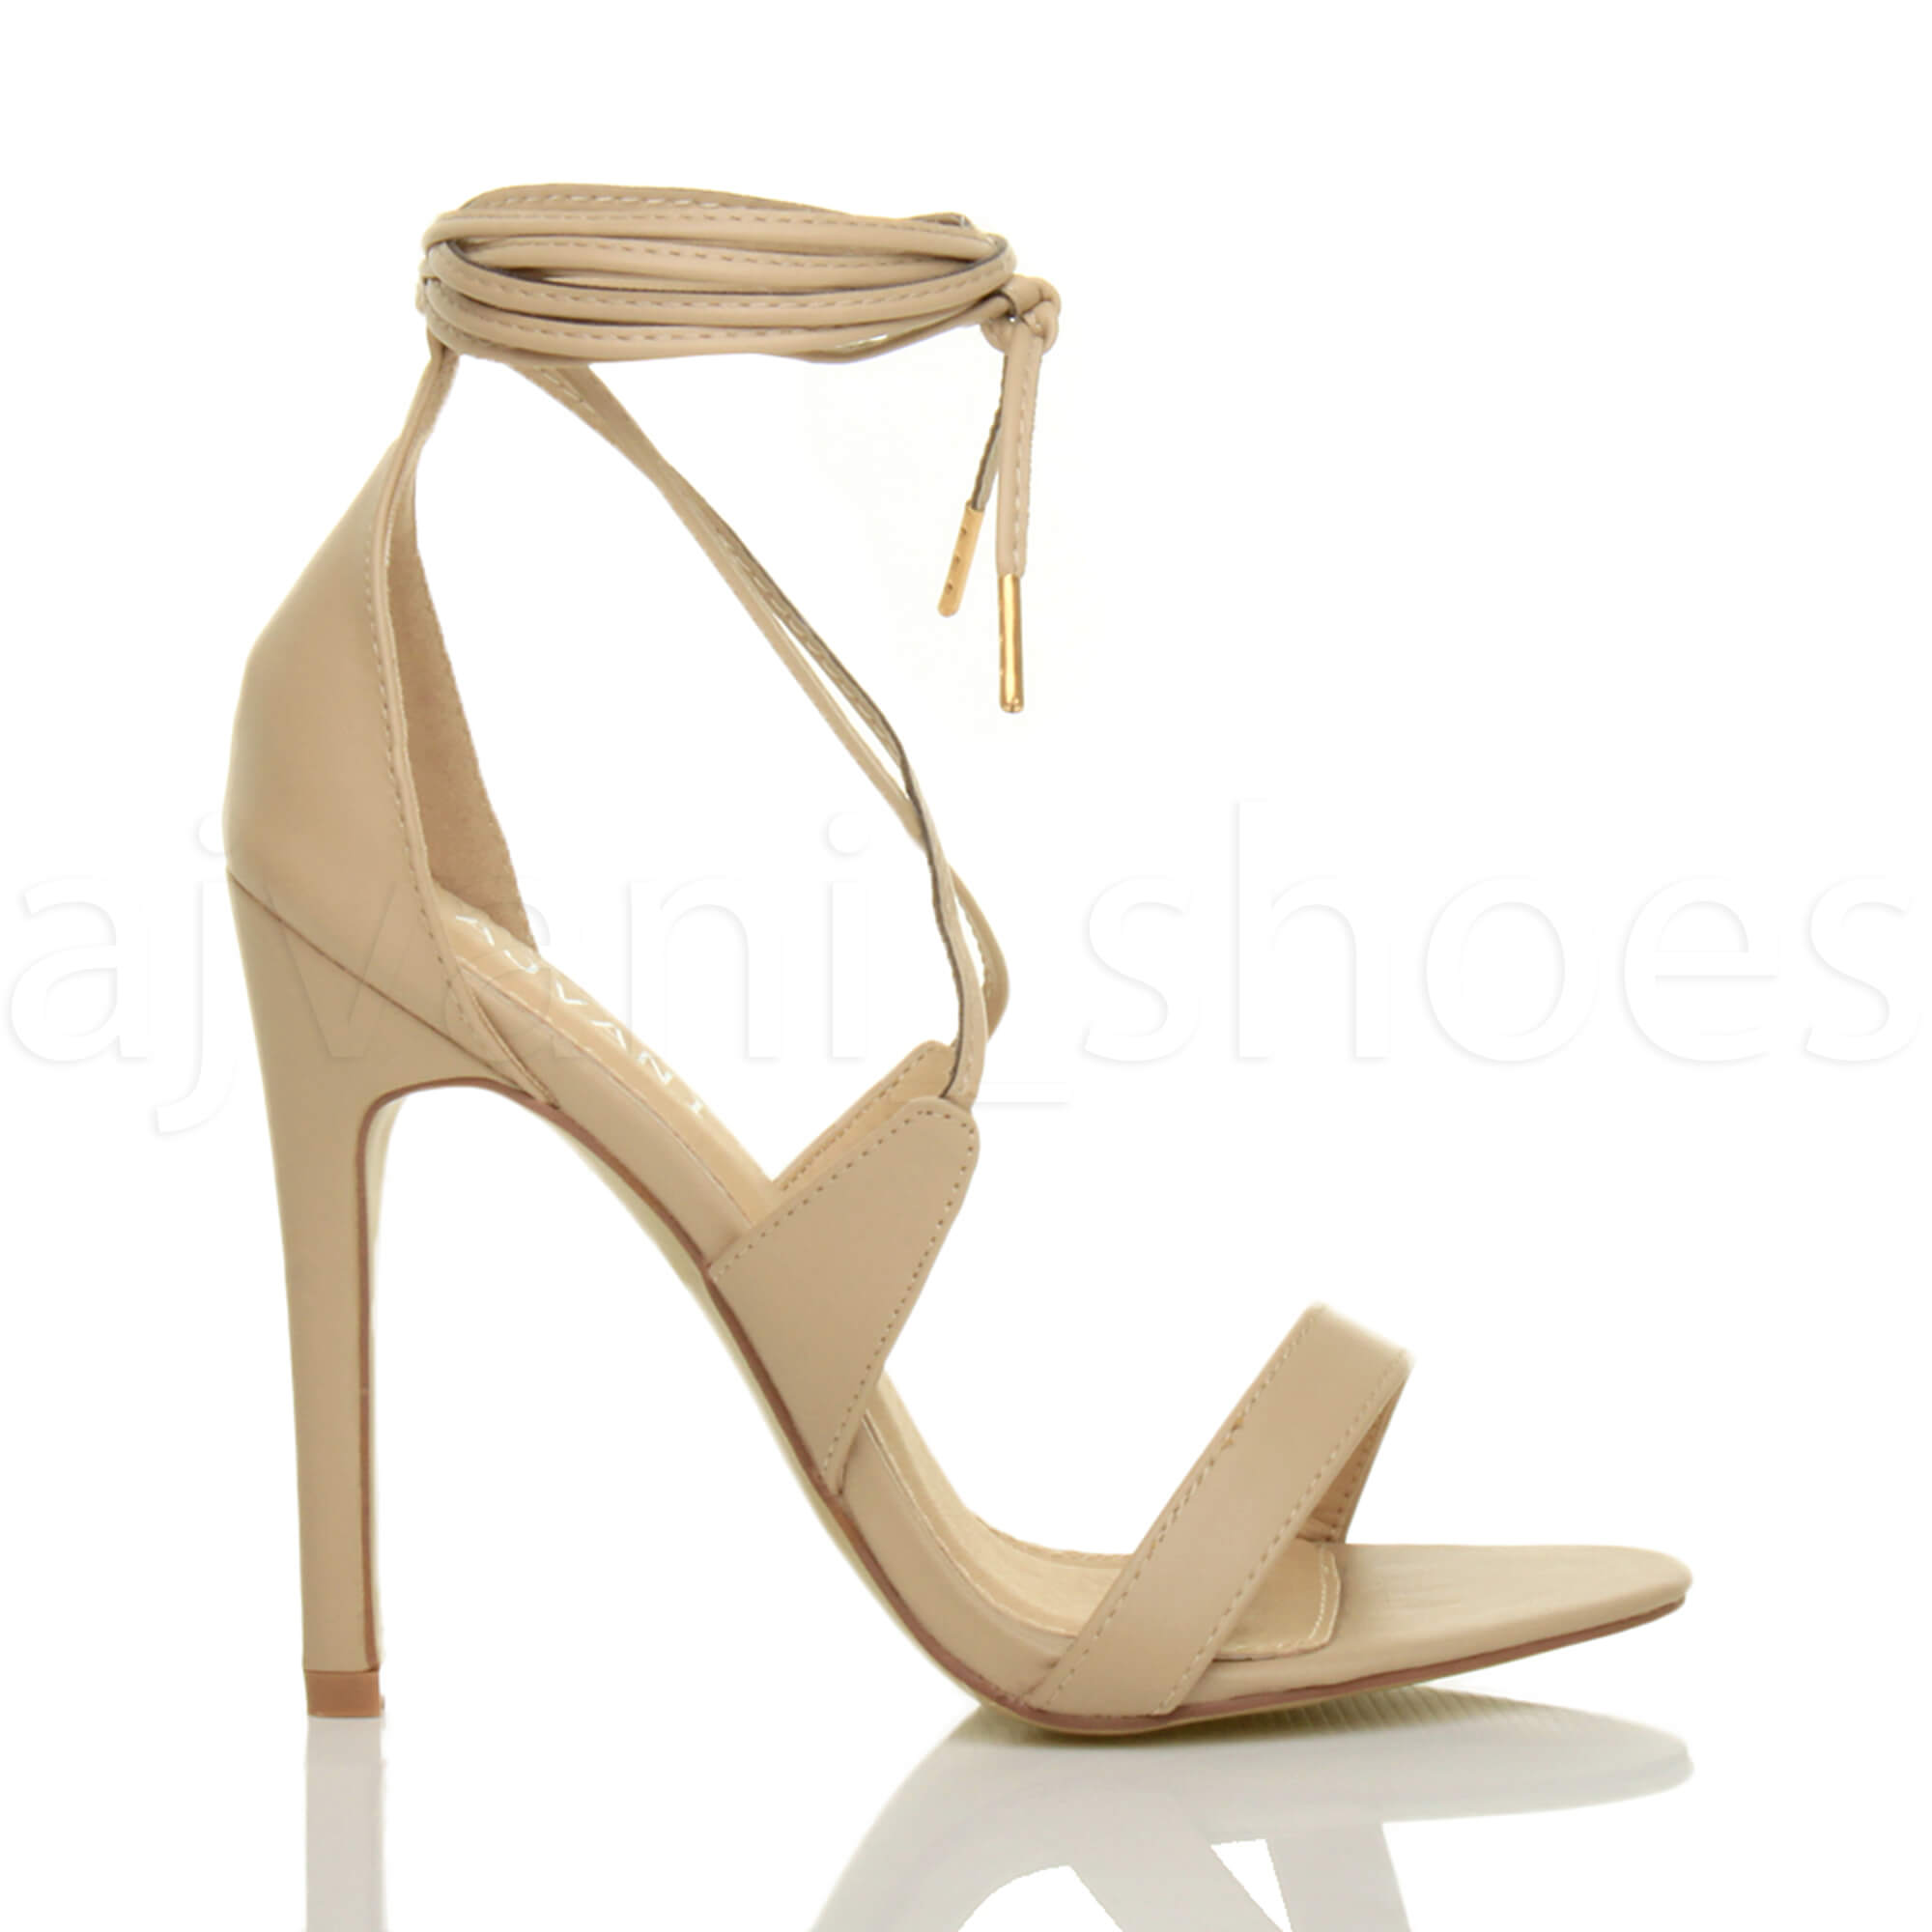 WOMENS-LADIES-HIGH-HEEL-BARELY-THERE-STRAPPY-LACE-TIE-UP-SANDALS-SHOES-SIZE thumbnail 33